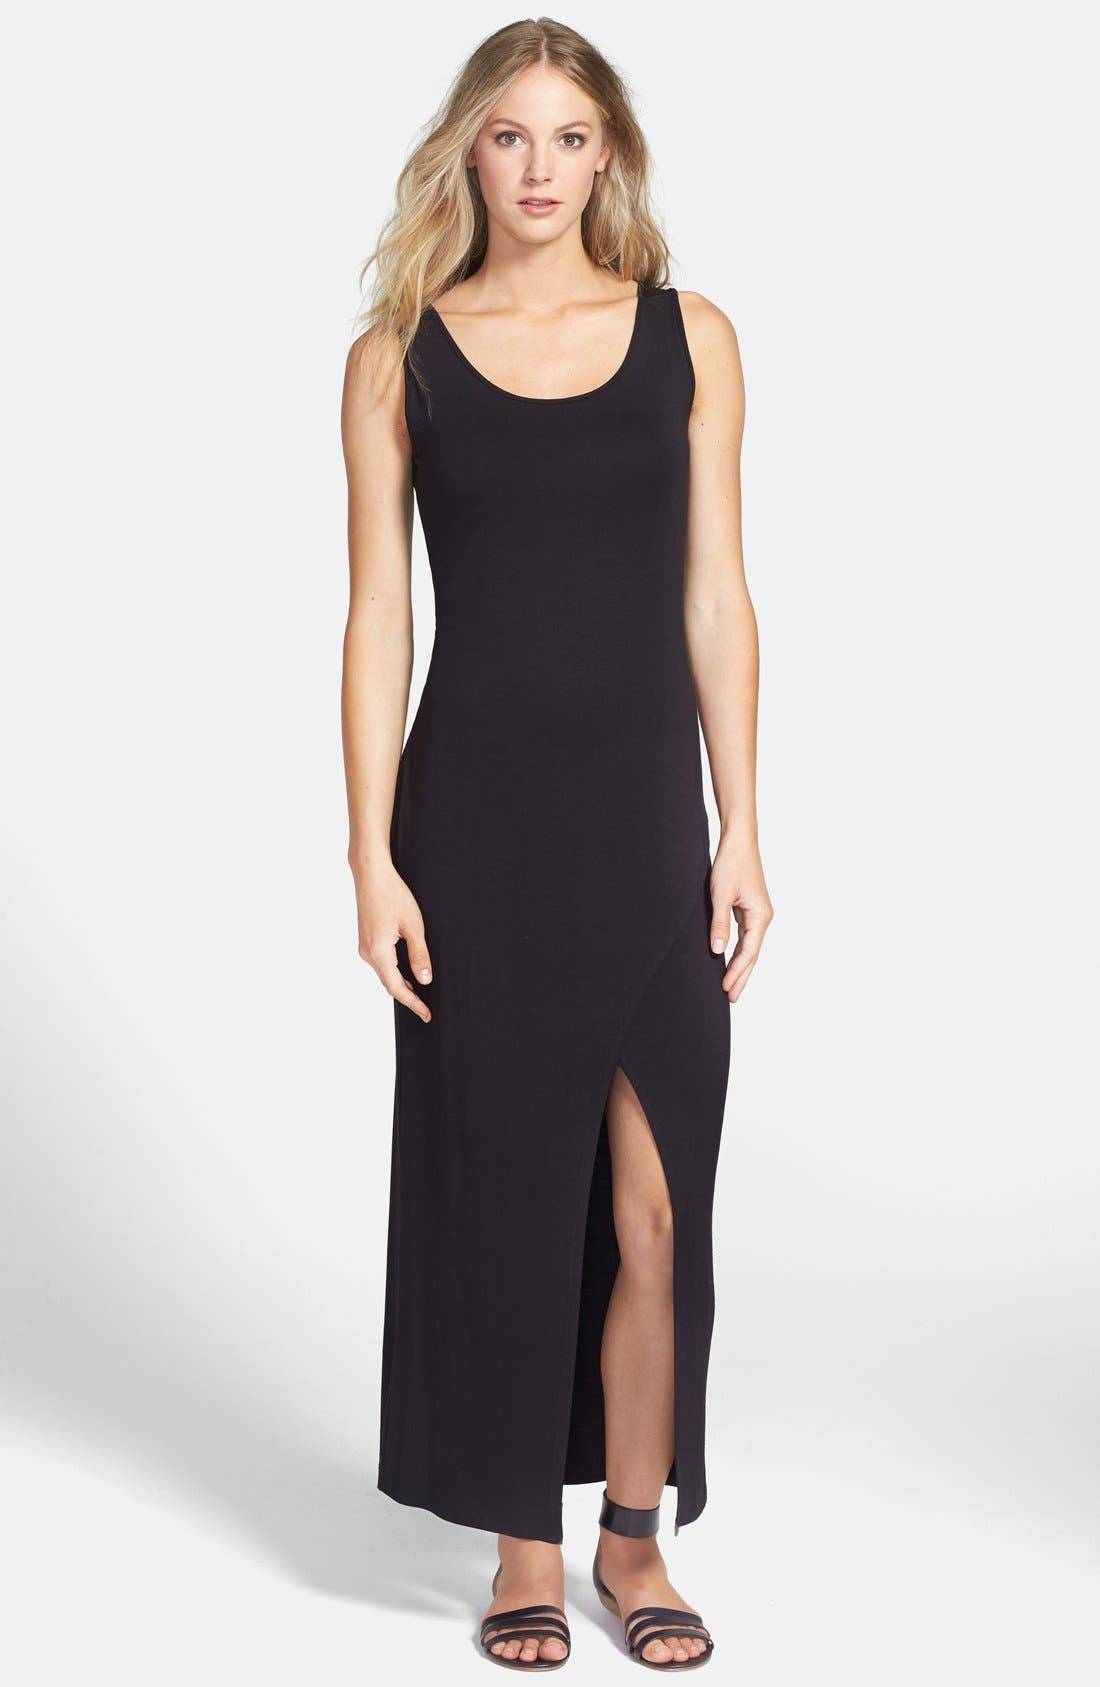 Alternate Image 1 Selected - Loveappella Wrap Skirt Tank Maxi Dress (Petite)